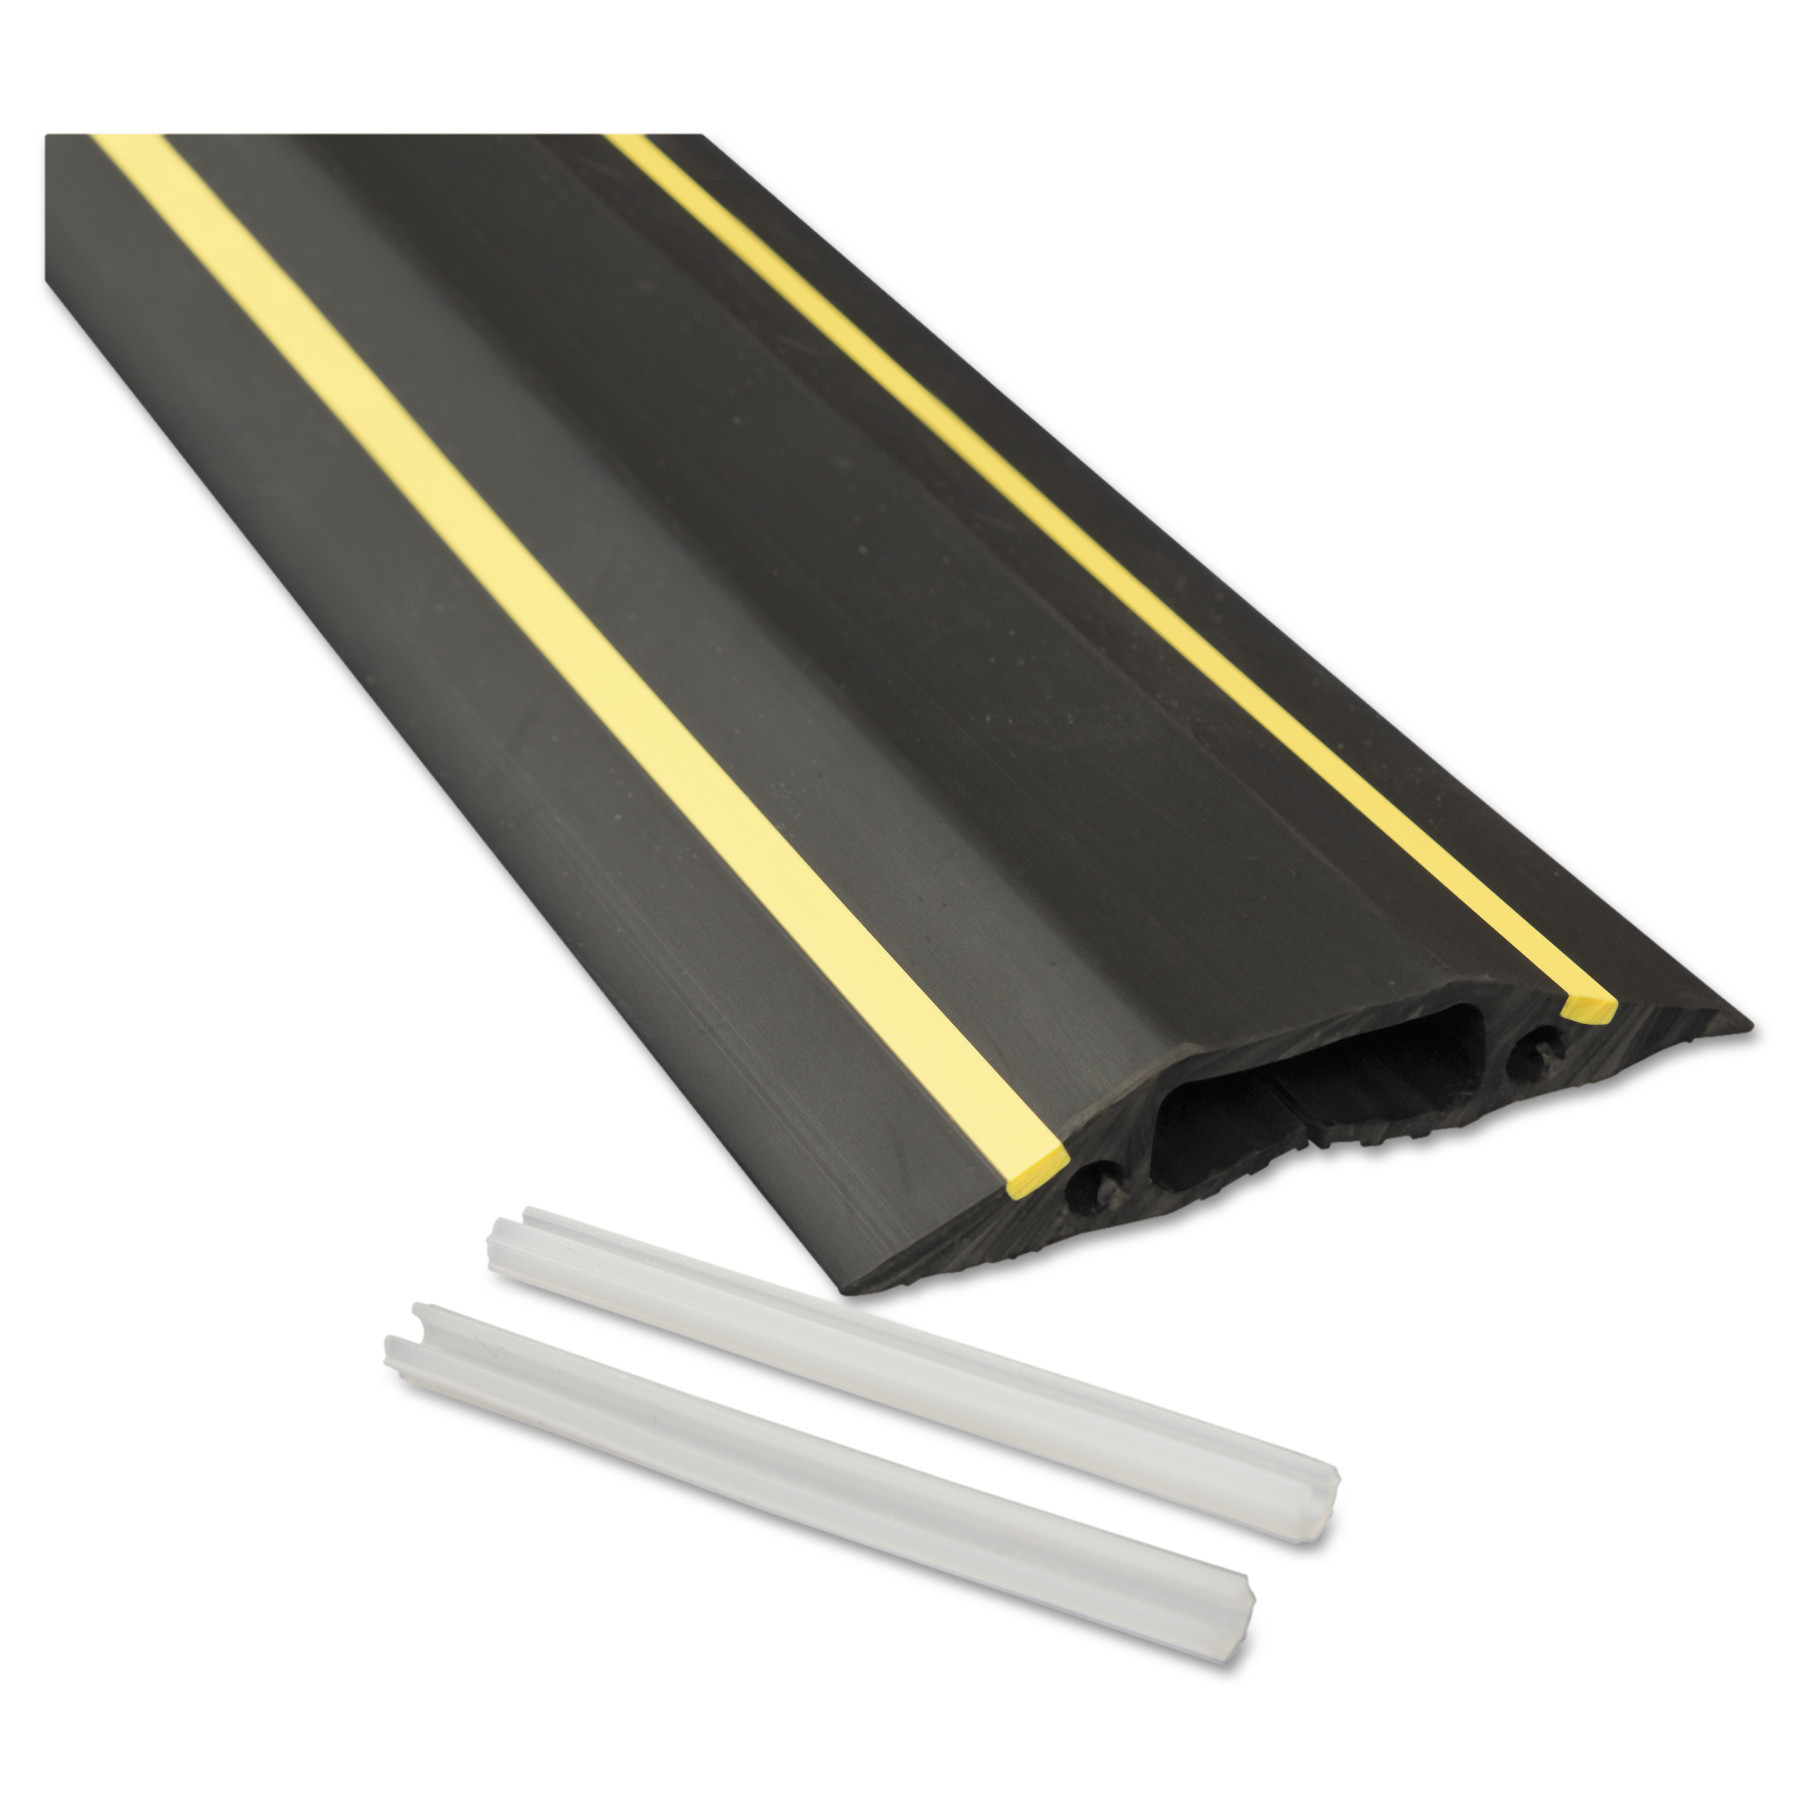 D-Line Medium-Duty Floor Cable Cover, 3 1/4 x 1/2 x 6 ft, Black with Yellow Stripe